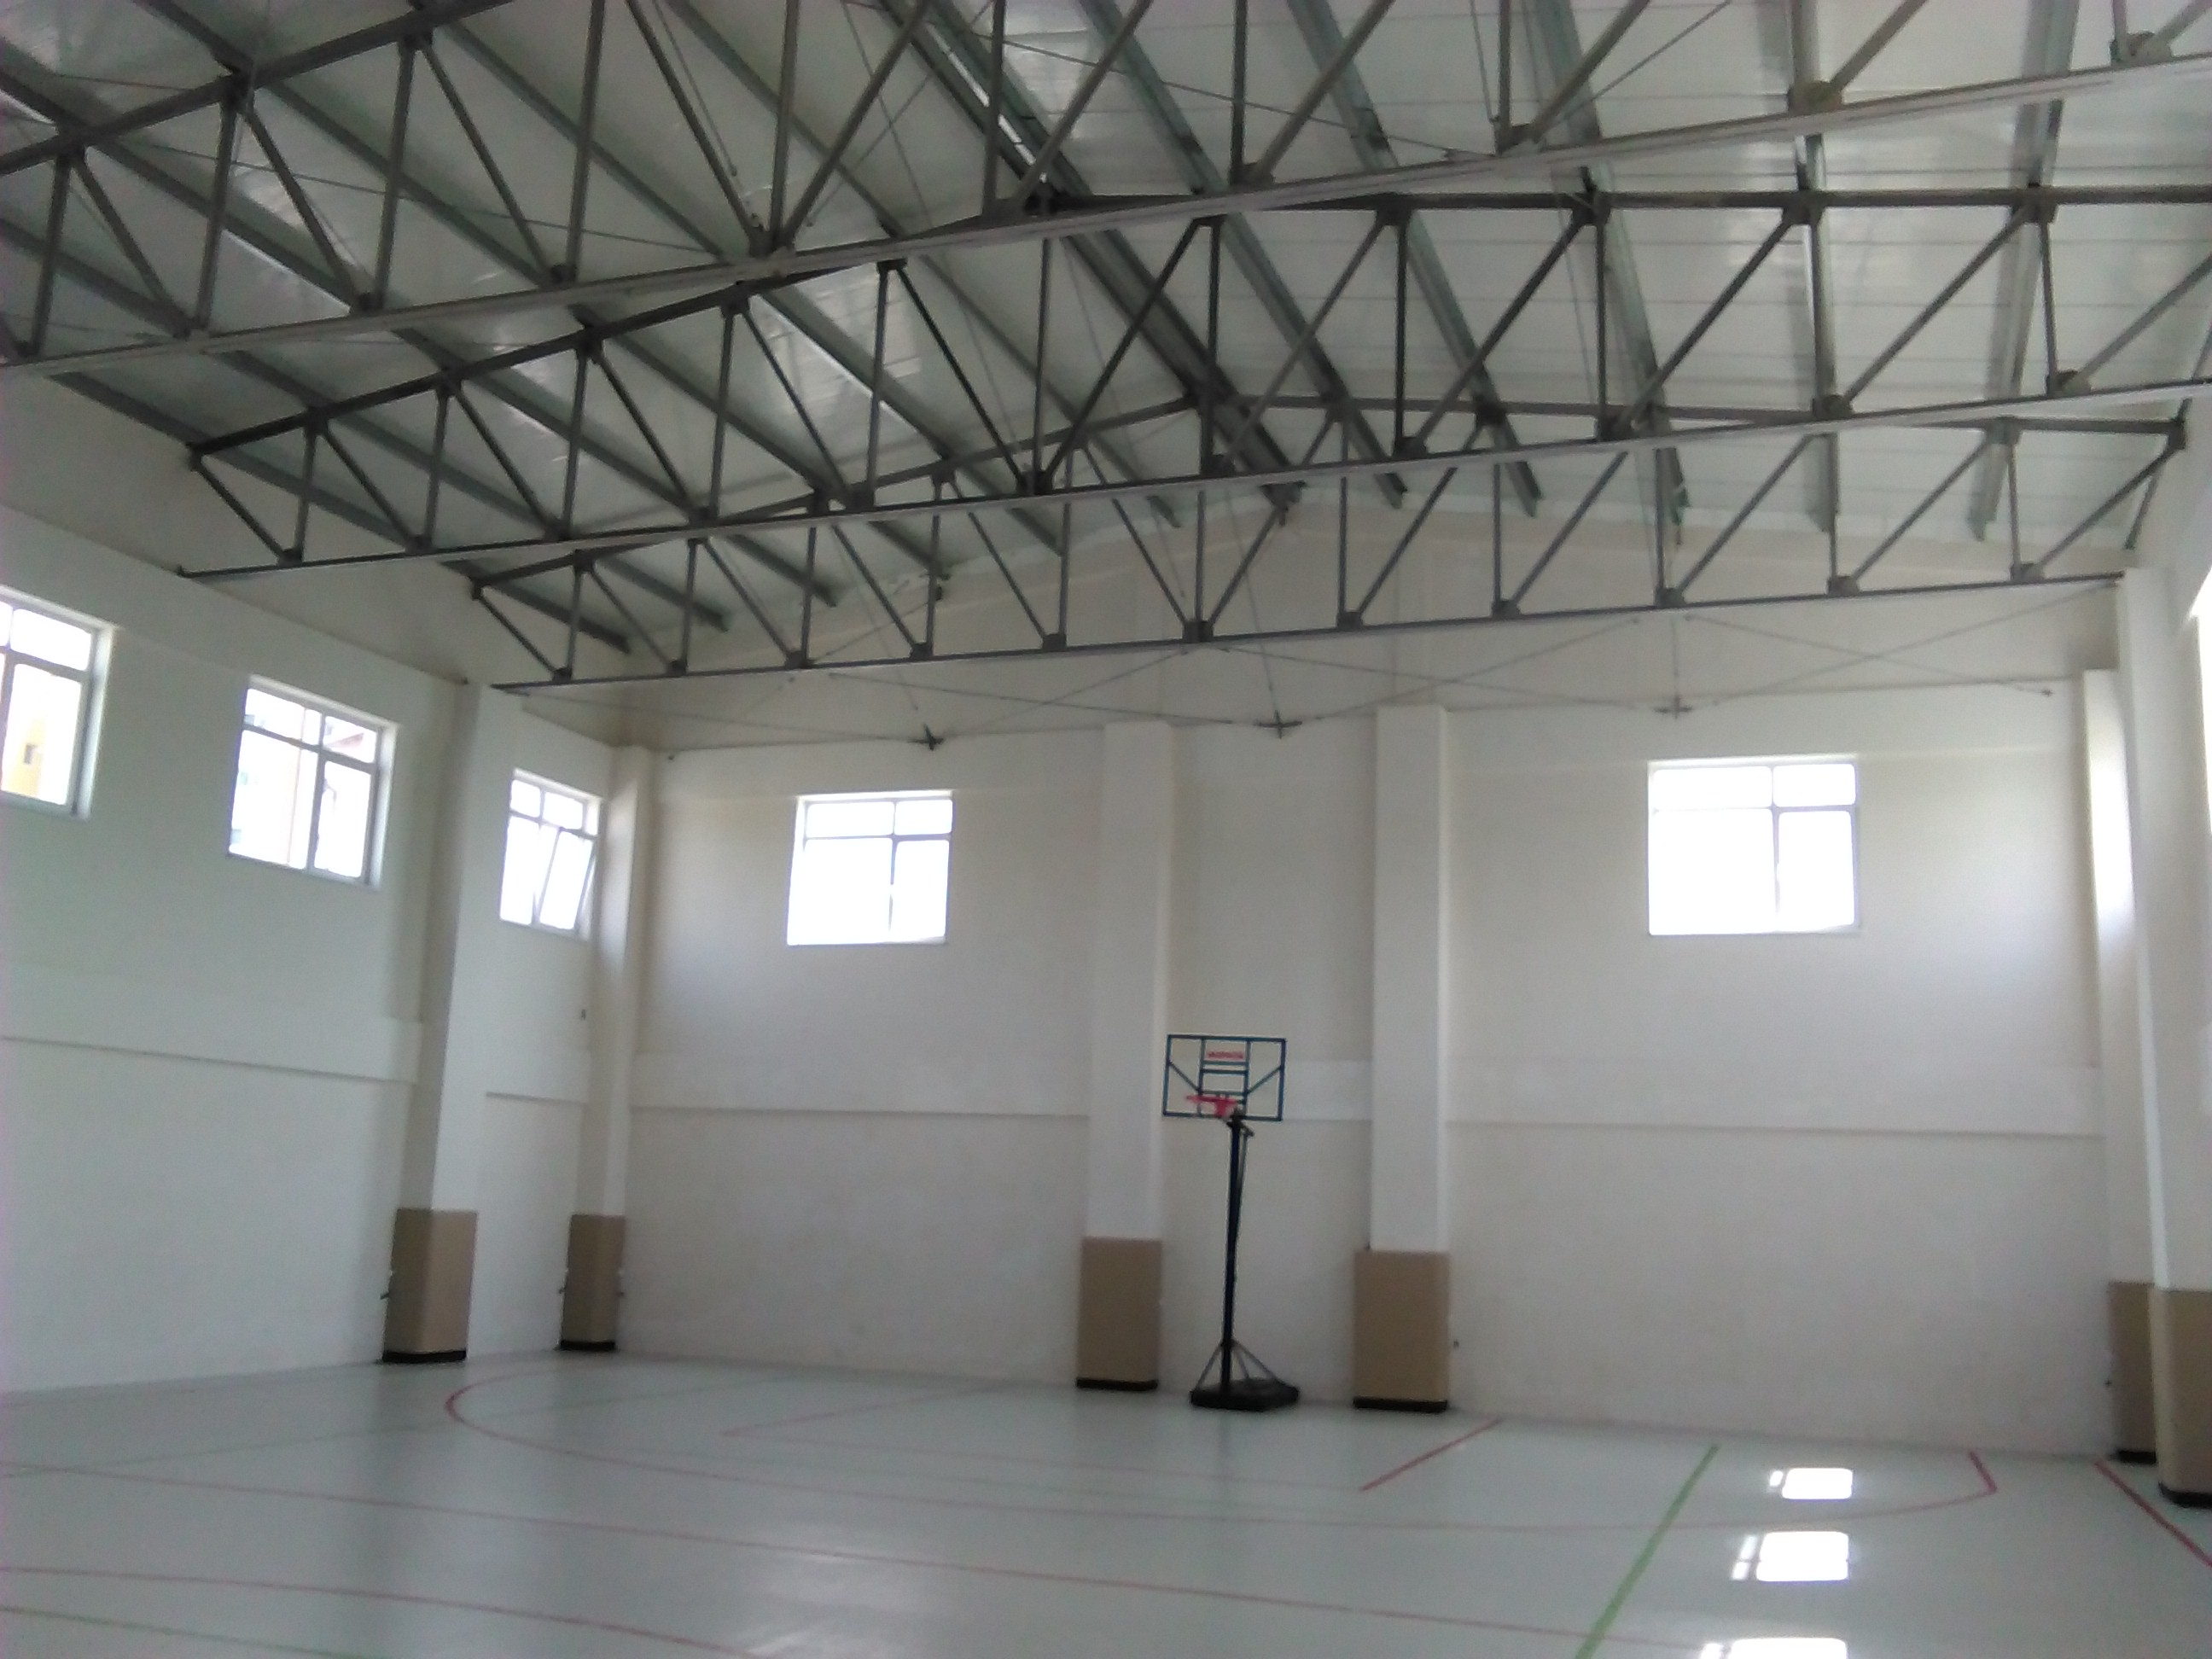 The gym, now being used.